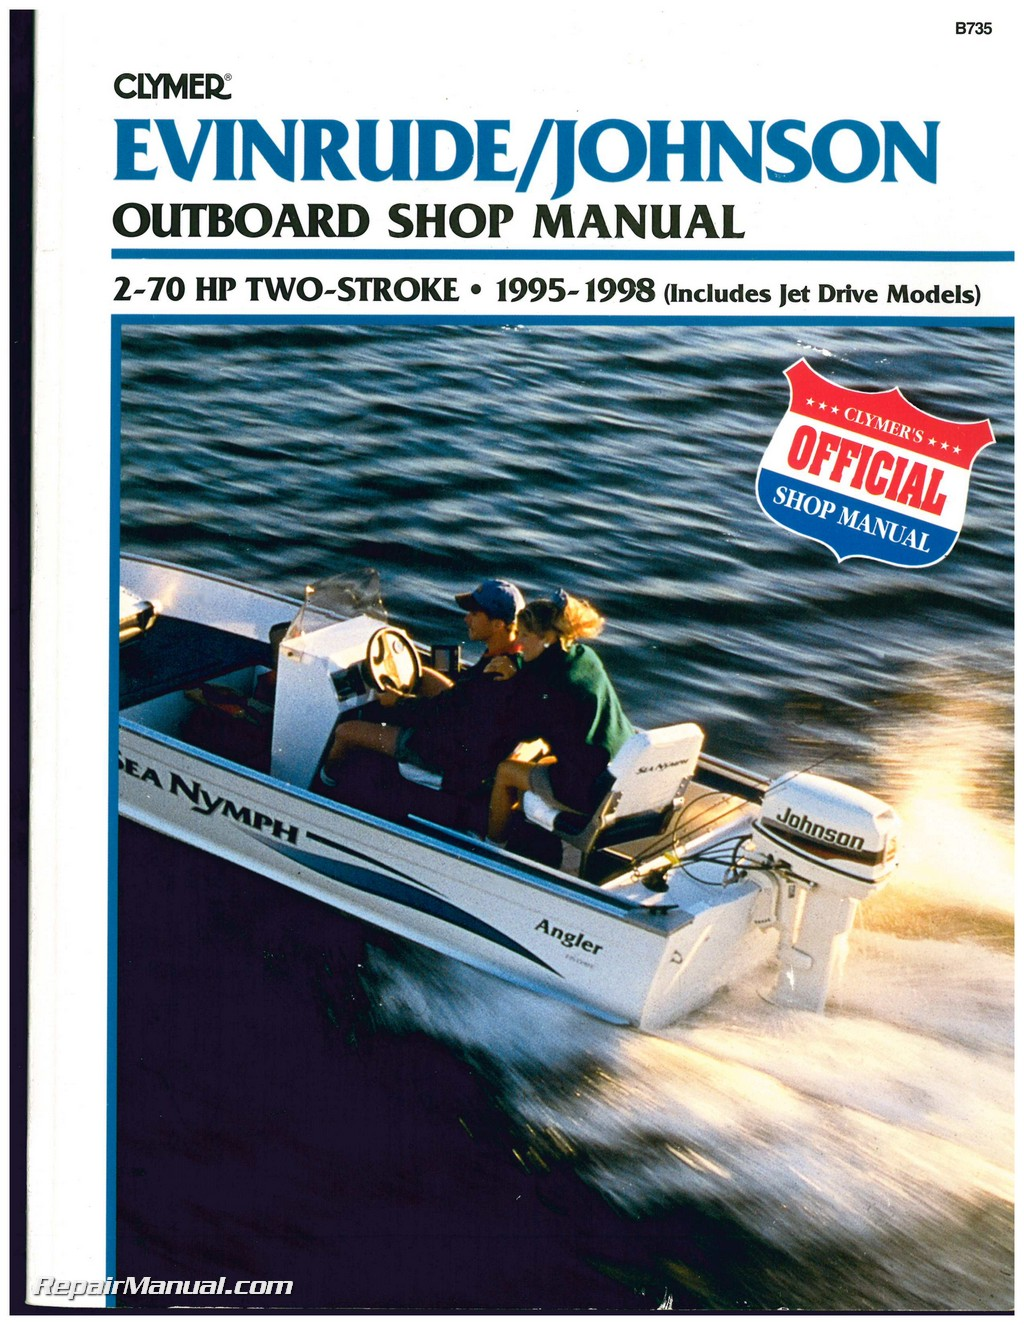 Johnson Diagram Wiring 55hp 55fs69kadiagram Pump Evinrude 2 70 Hp Stroke Outboard Shop Manual 1995 1996 1997 19983resize